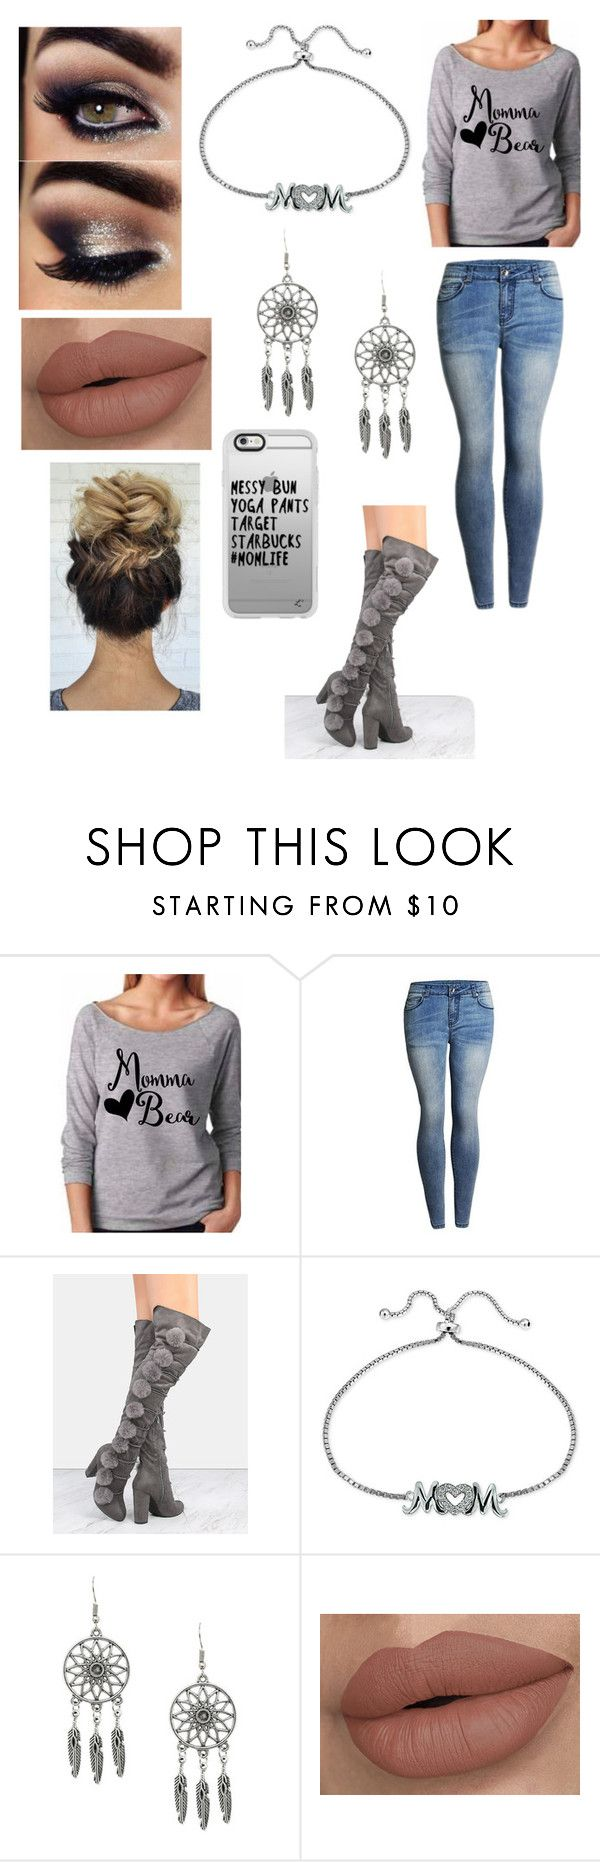 """""""Being a casual mom"""" by shirowland ❤ liked on Polyvore featuring Giani Bernini, Casetify, men's fashion and menswear"""